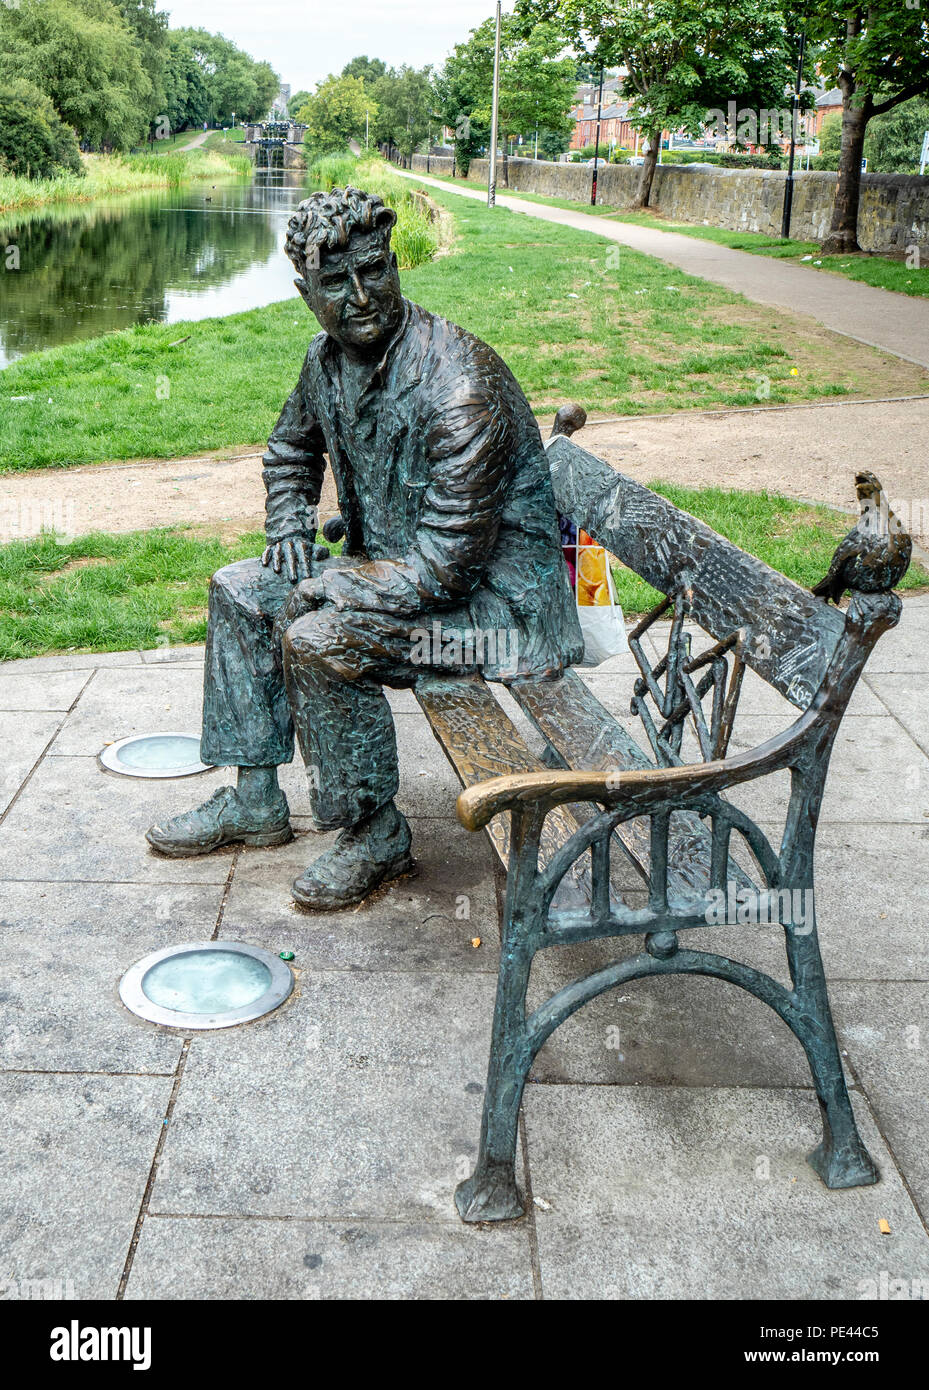 Bronze sculpture of novelist and playwright Brendan Behan and pigeon on a park bench by the Royal Canal in Dublin Ireland - Stock Image